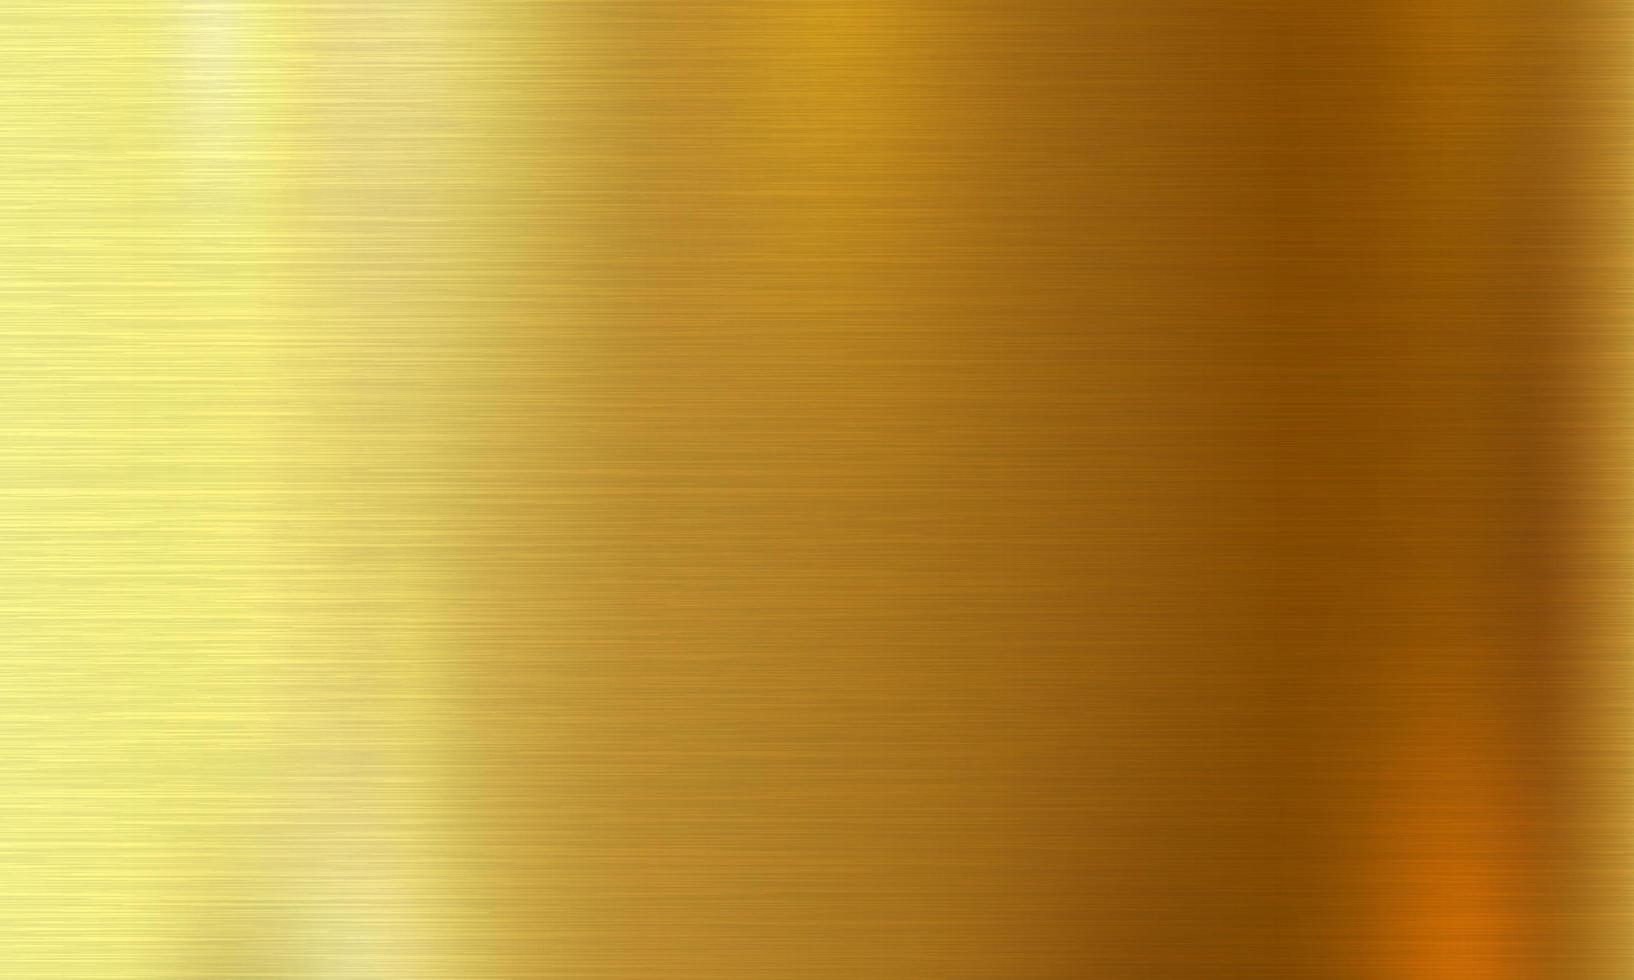 Gold brushed metal texture vector